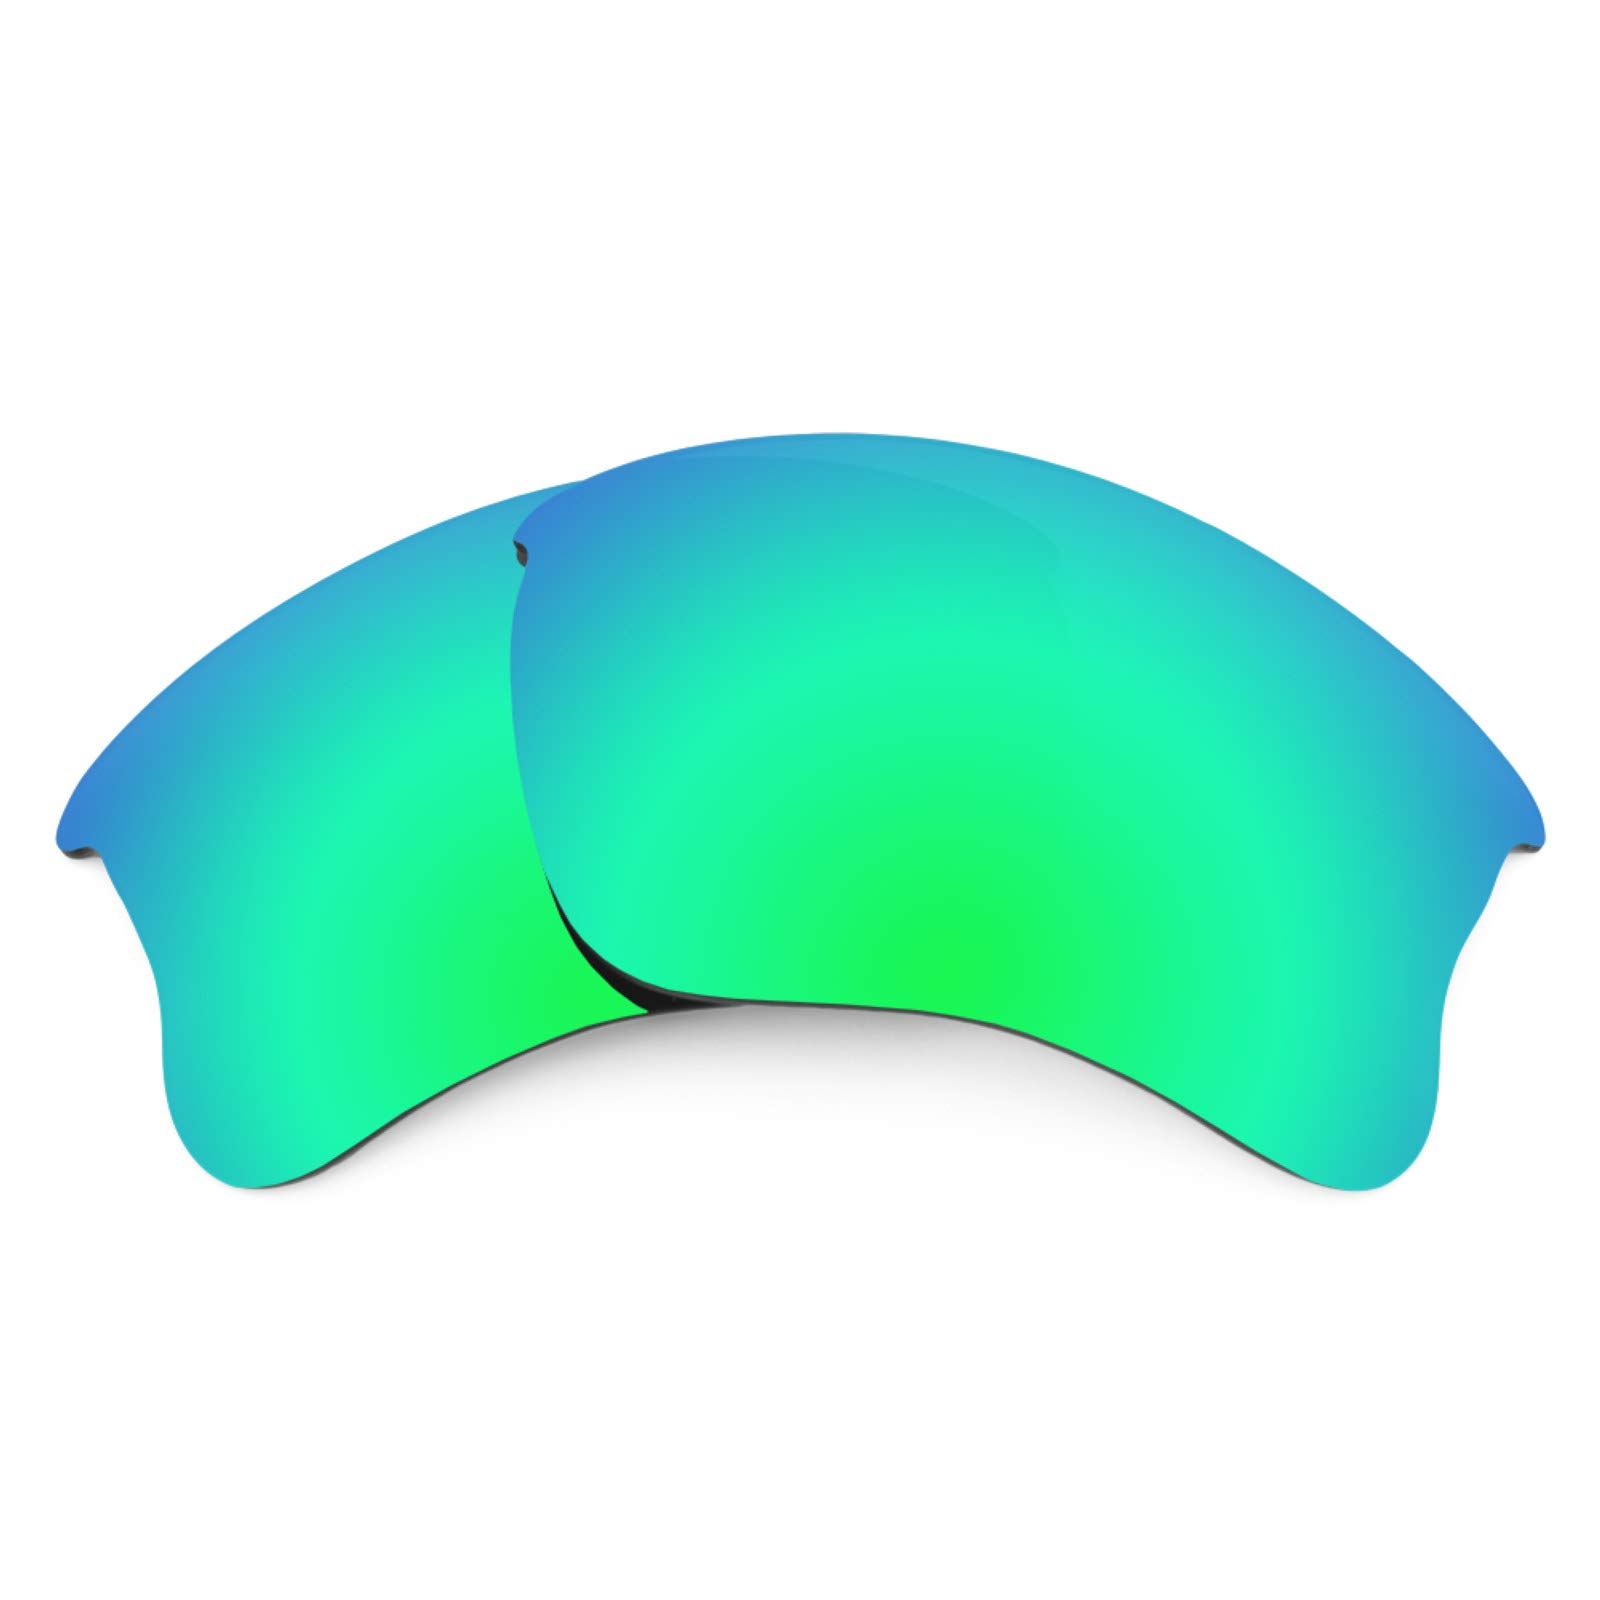 Revant Replacement Lenses for Oakley Flak Jacket XLJ (Asian Fit), Polarized, Emerald Green MirrorShield by Revant